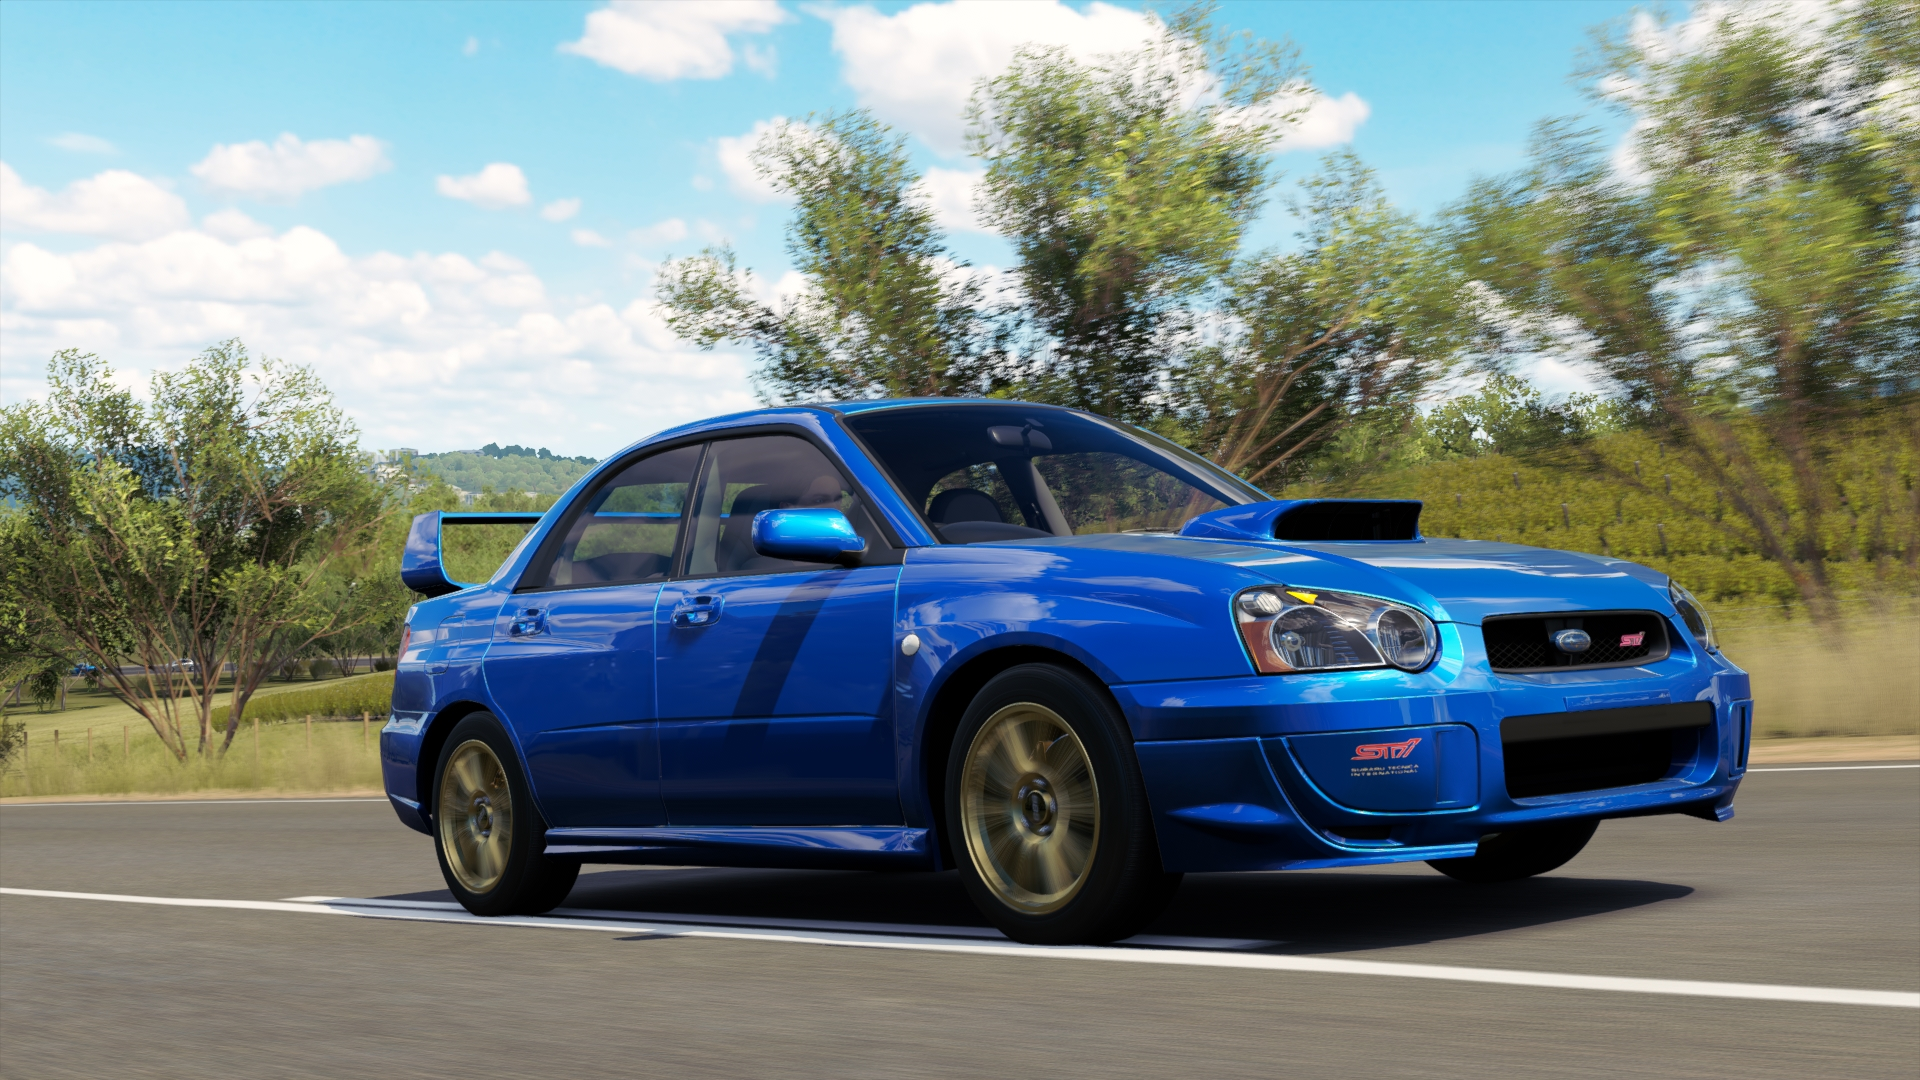 subaru impreza wrx sti 2004 forza motorsport wiki. Black Bedroom Furniture Sets. Home Design Ideas